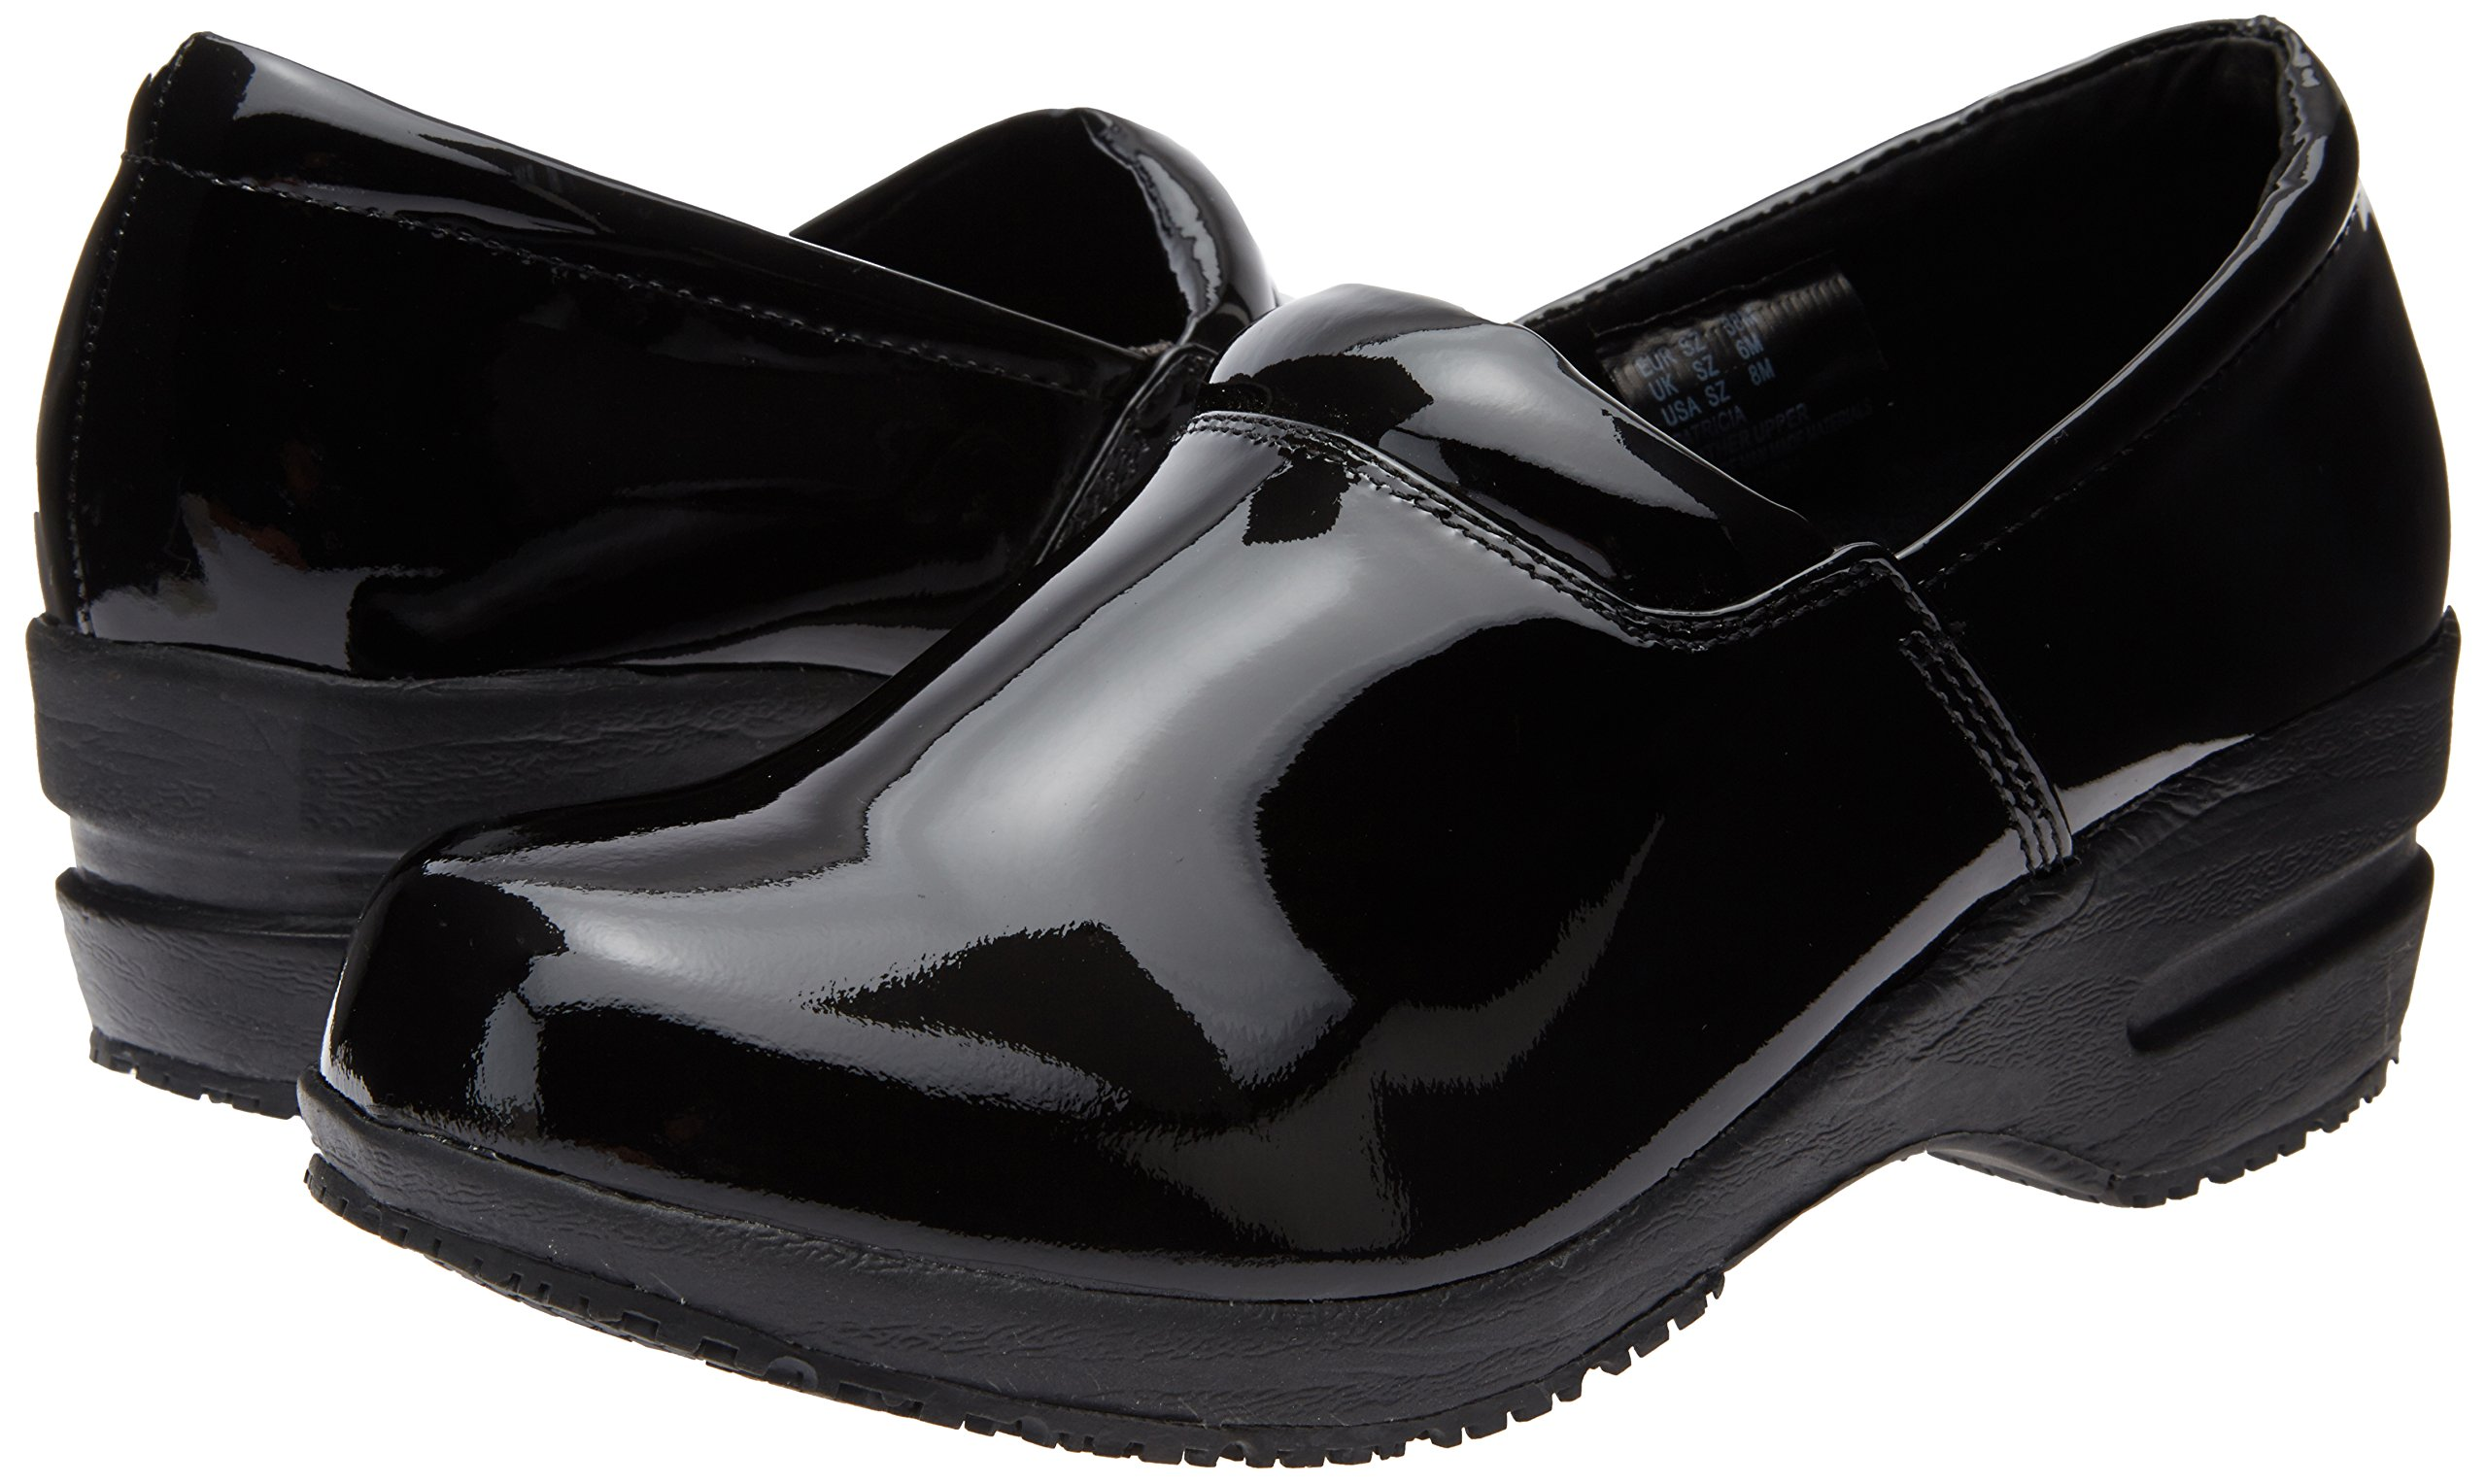 Cherokee Women's Patricia Step In Shoe, Black Patent, 6.5 M US by Cherokee (Image #6)